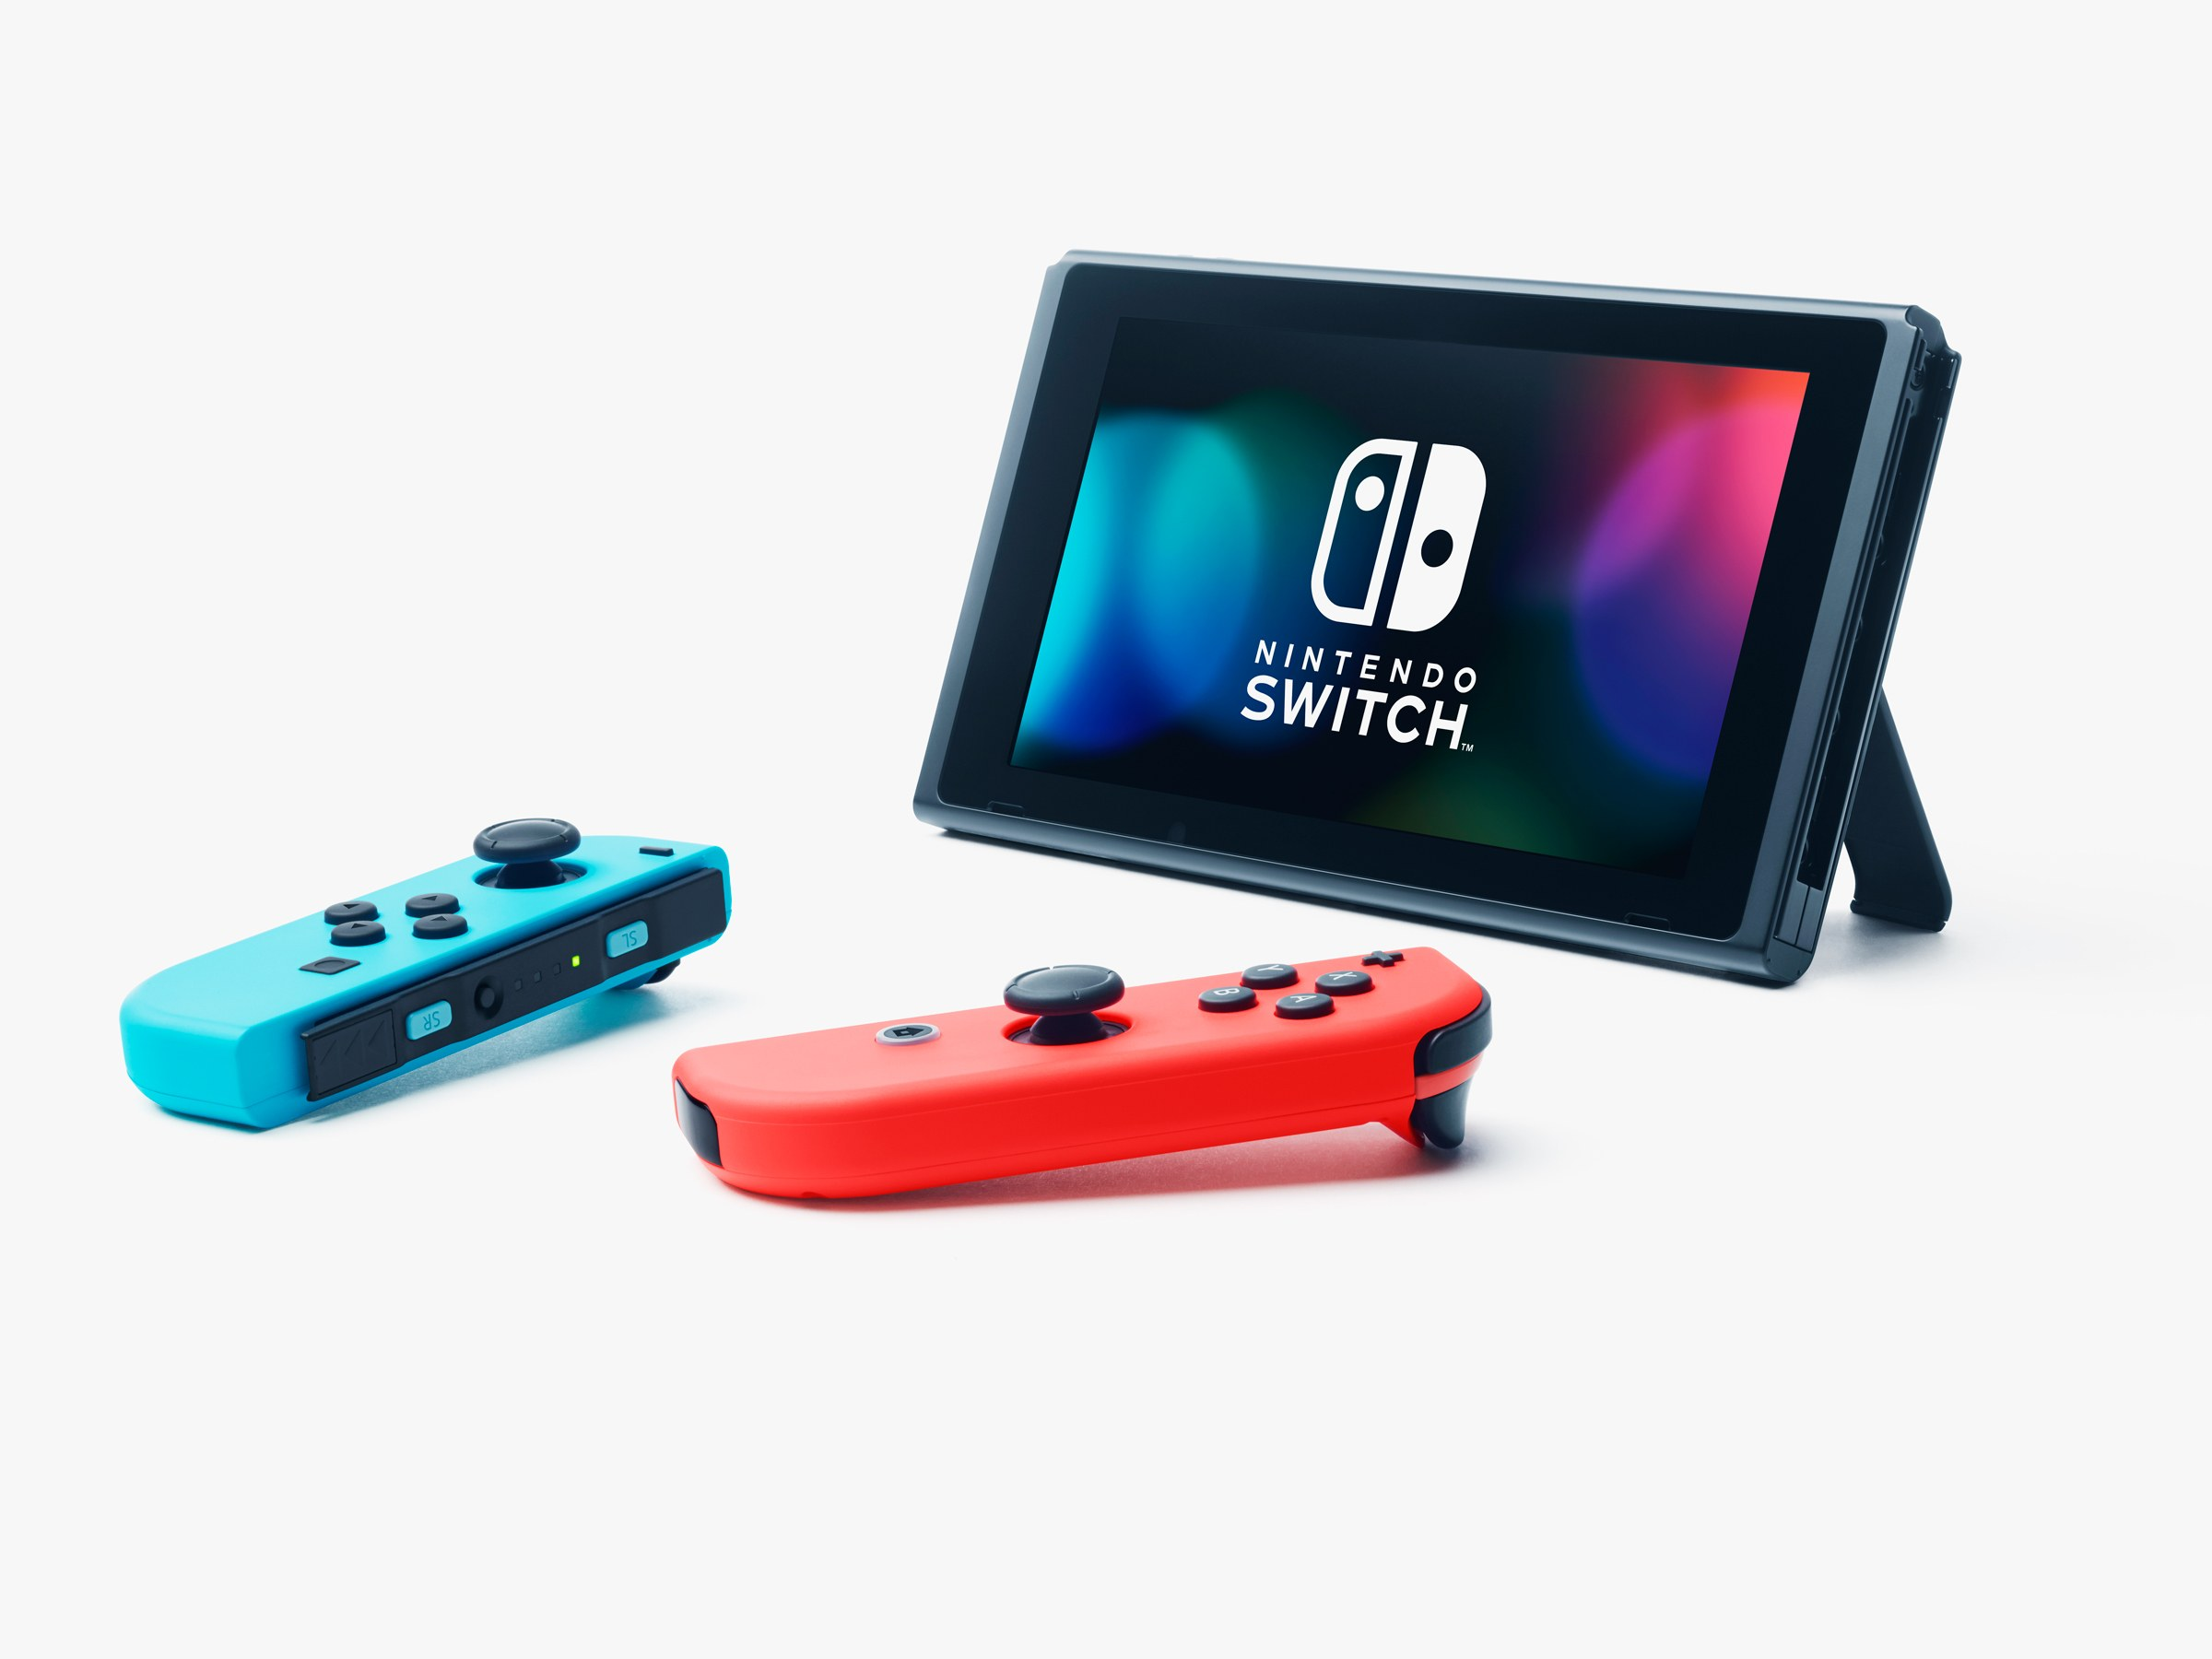 Nintendo stock leaps following Switch approval in China